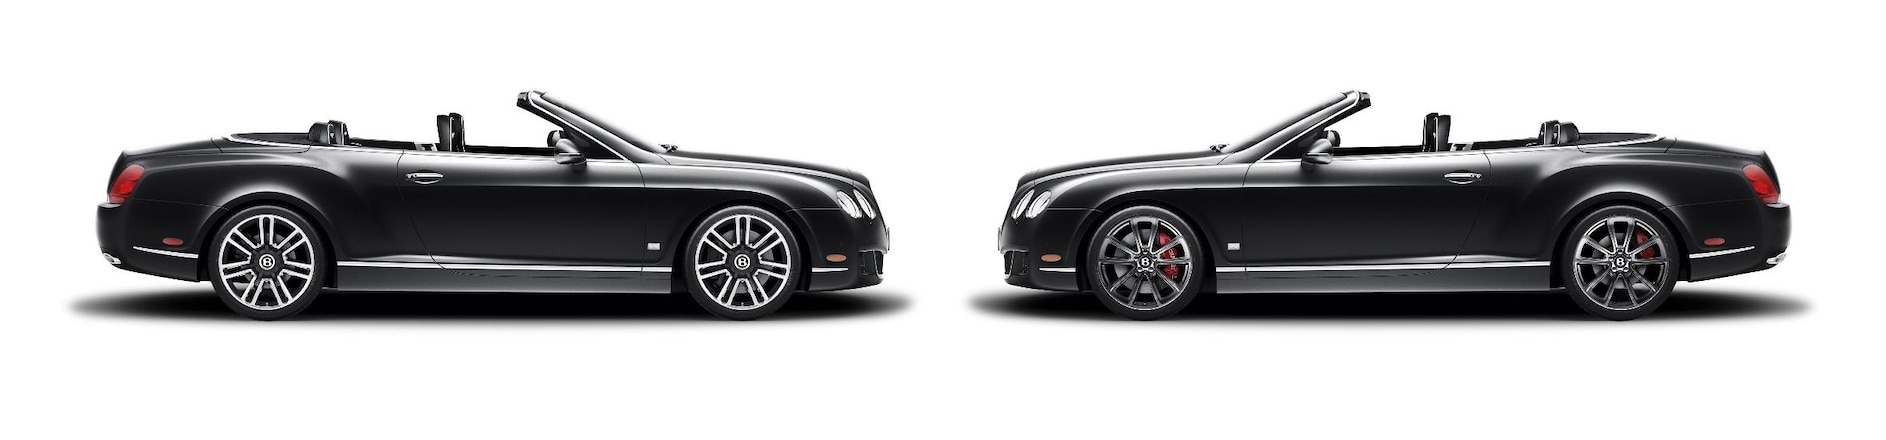 Bentley Continental GTC and GTC Speed 80-11 Editions Unveiled - Web Exclusive